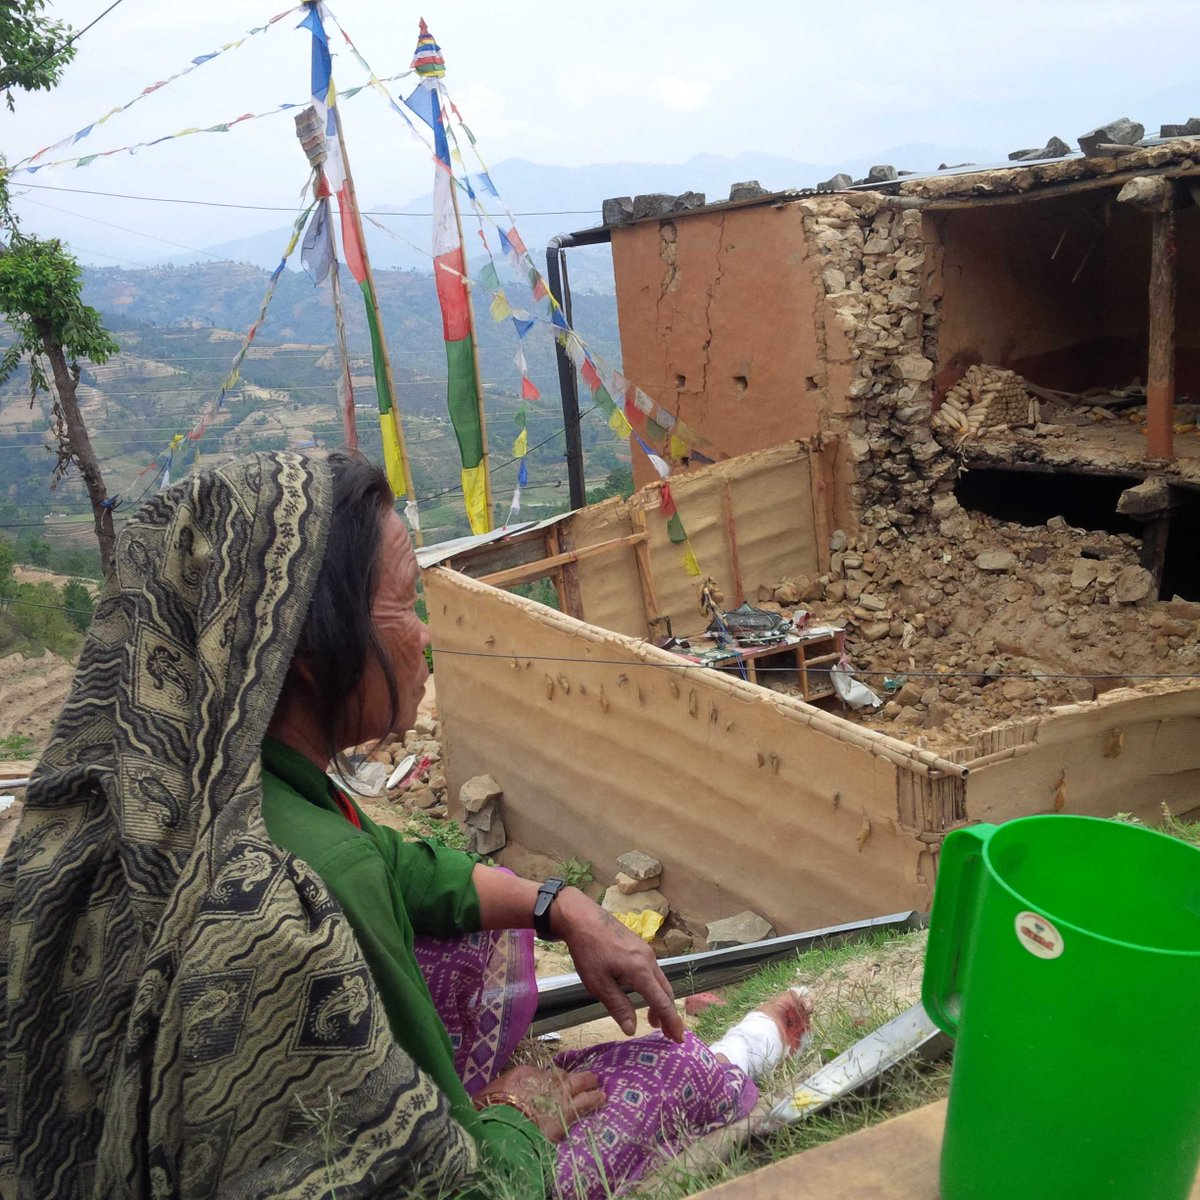 62yro crawled out from under rubble of house she spent her life building. #nepalquake #nepal http://t.co/J0KRvkzFhT